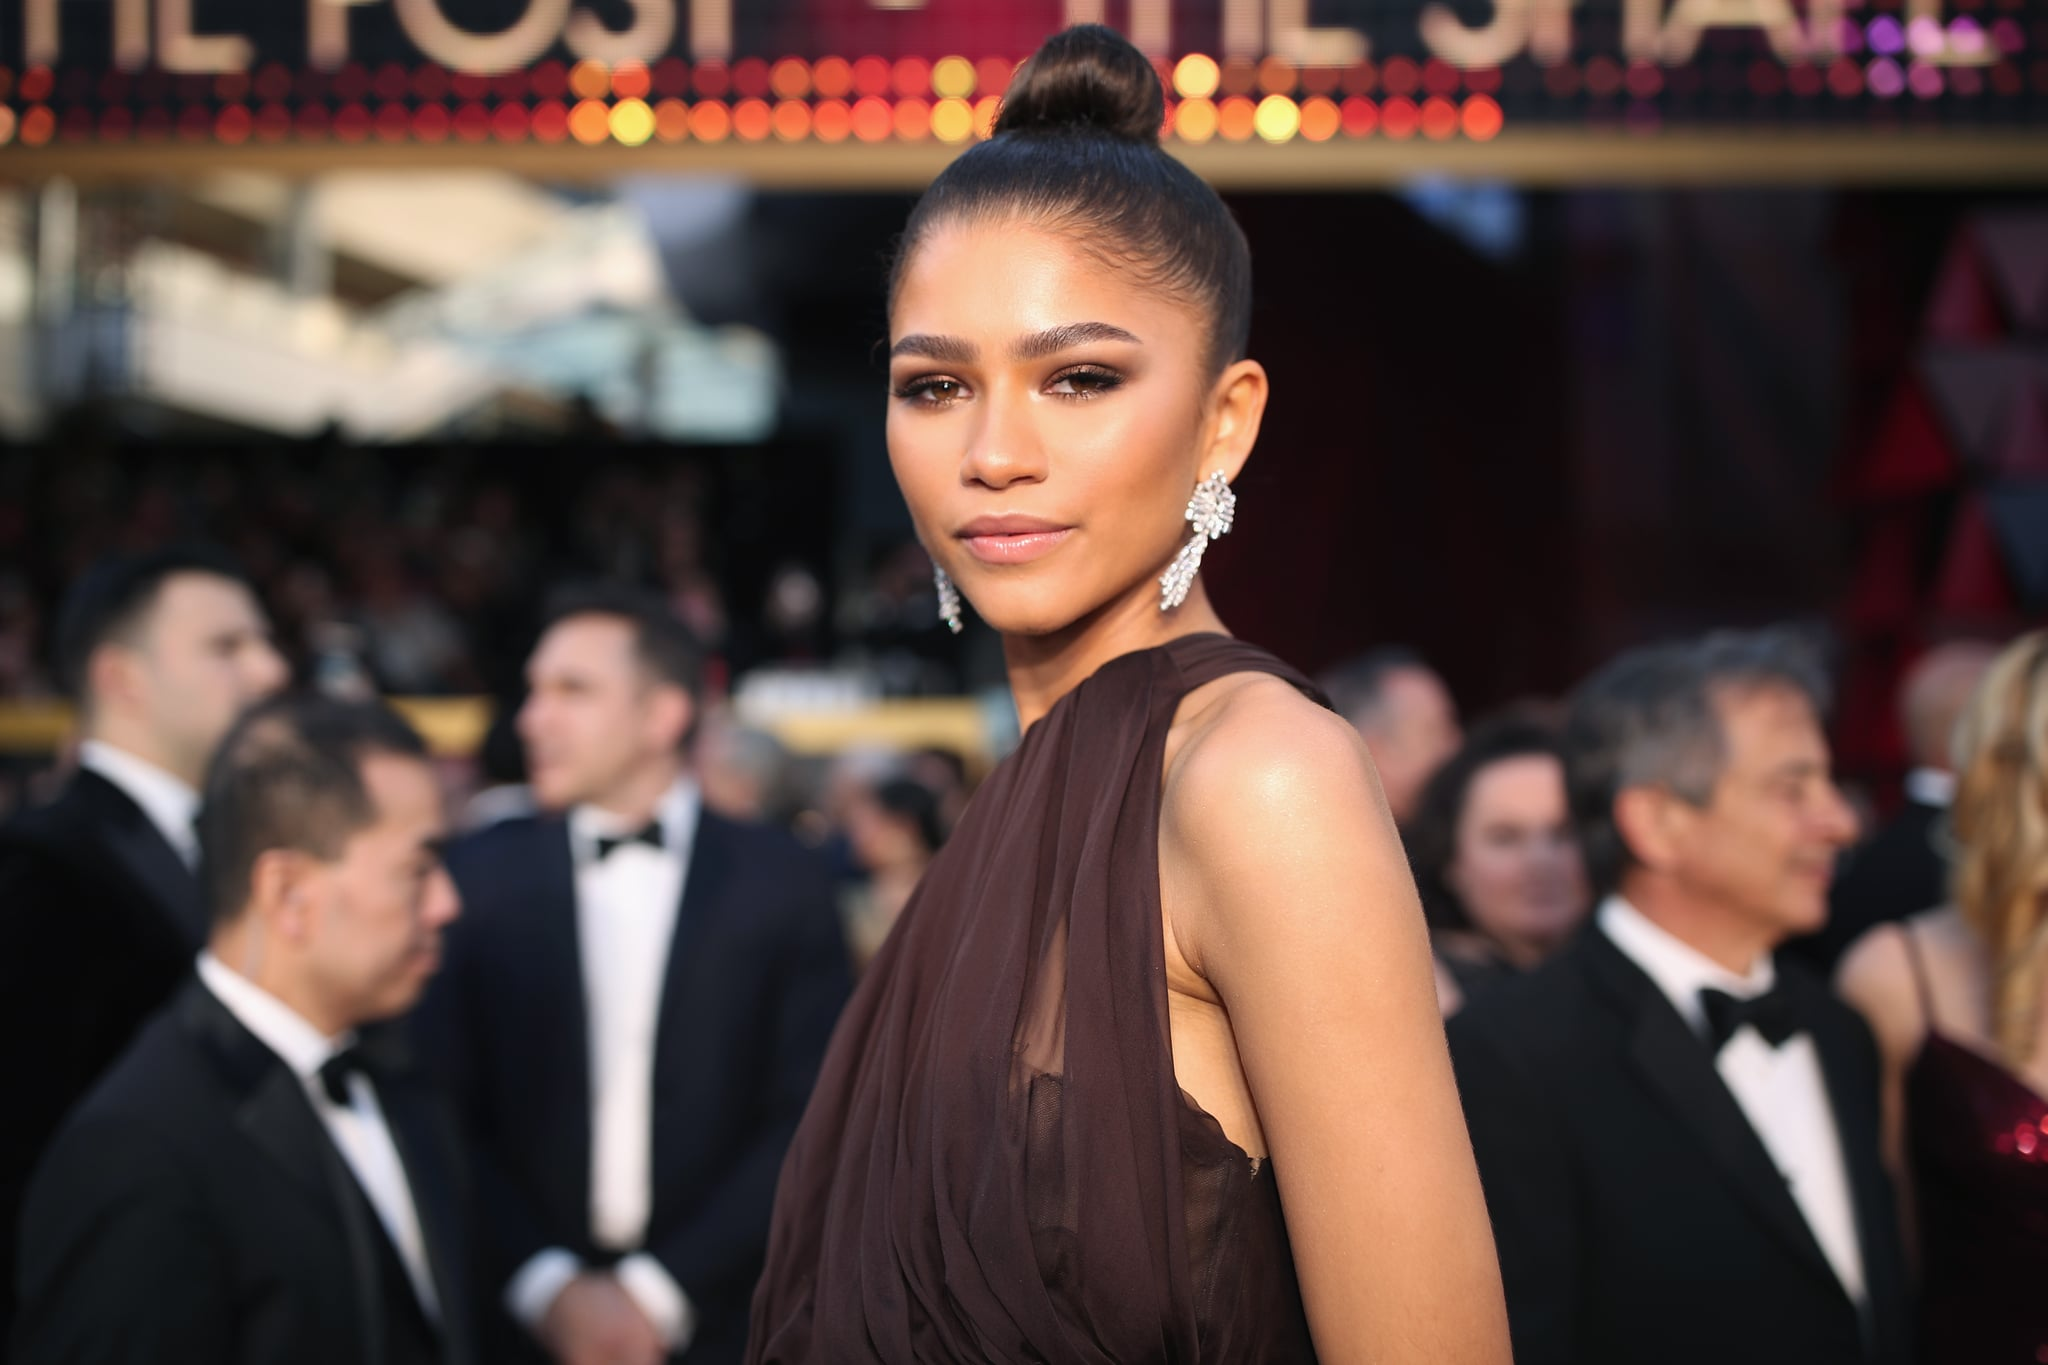 HOLLYWOOD, CA - MARCH 04:  Zendaya, wearing August Getty Atelier, attends the 90th Annual Academy Awards at Hollywood & Highland Centre on March 4, 2018 in Hollywood, California.  (Photo by Christopher Polk/Getty Images)